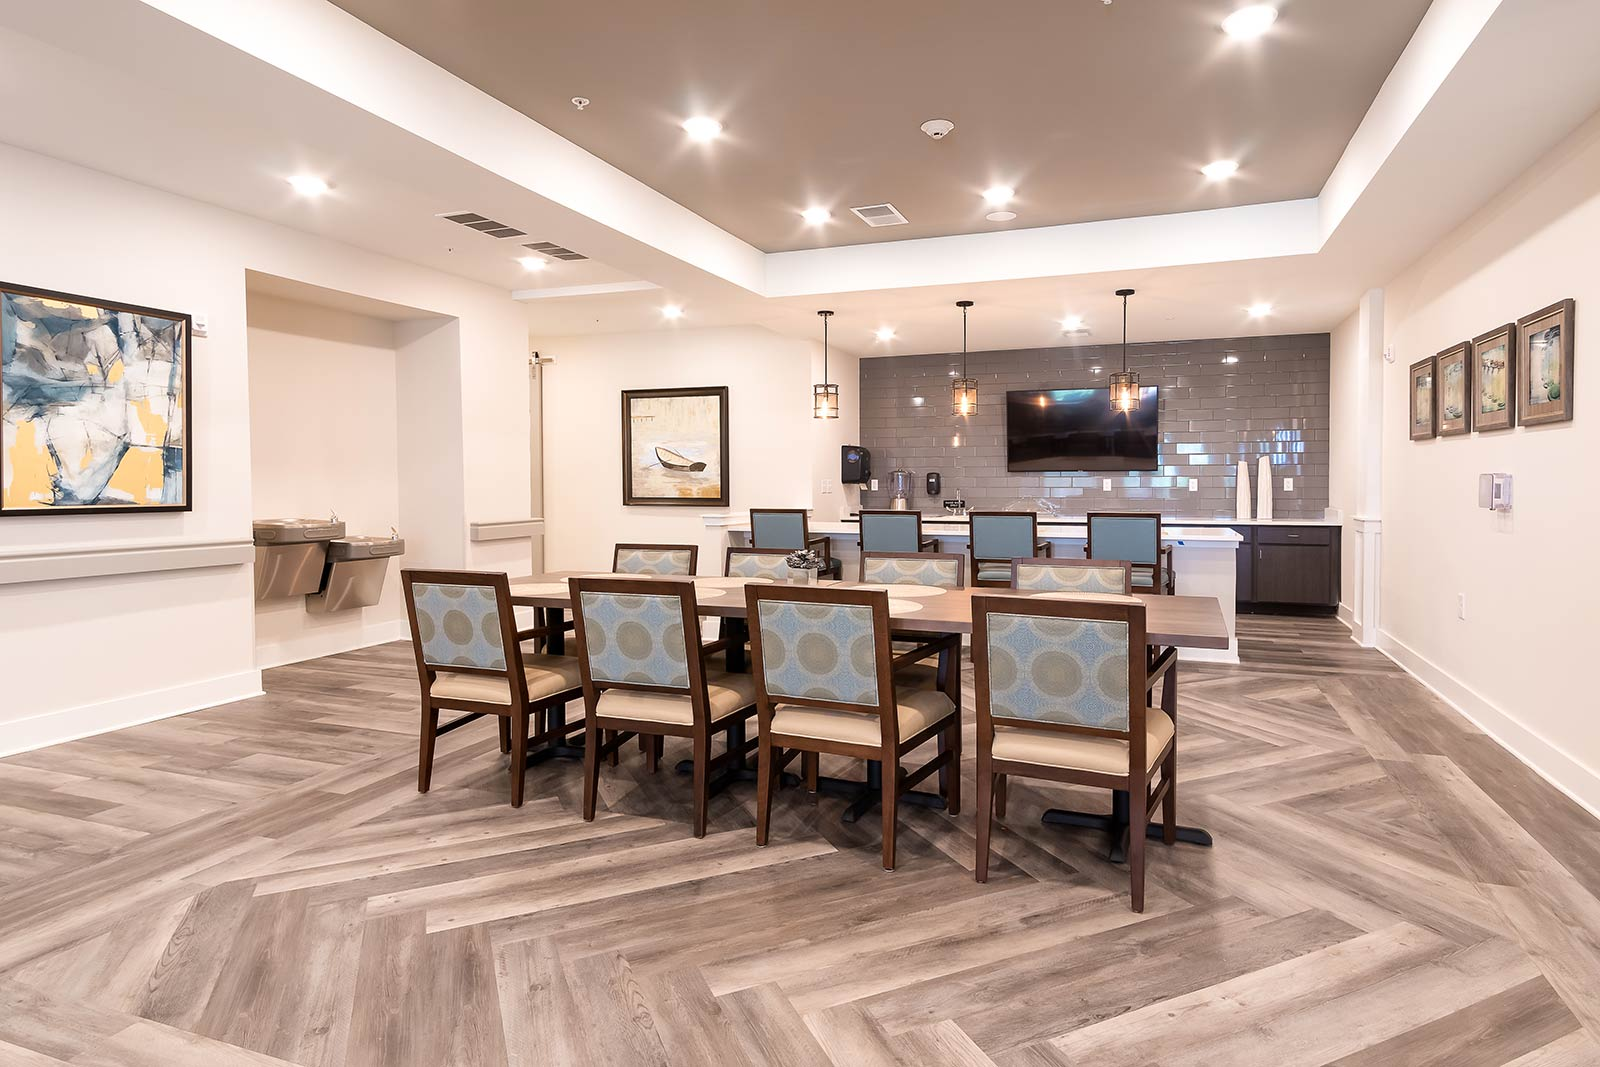 Lounge area with bar seating, TV, table and chairs in our Plant City FL assisted living and memory care community